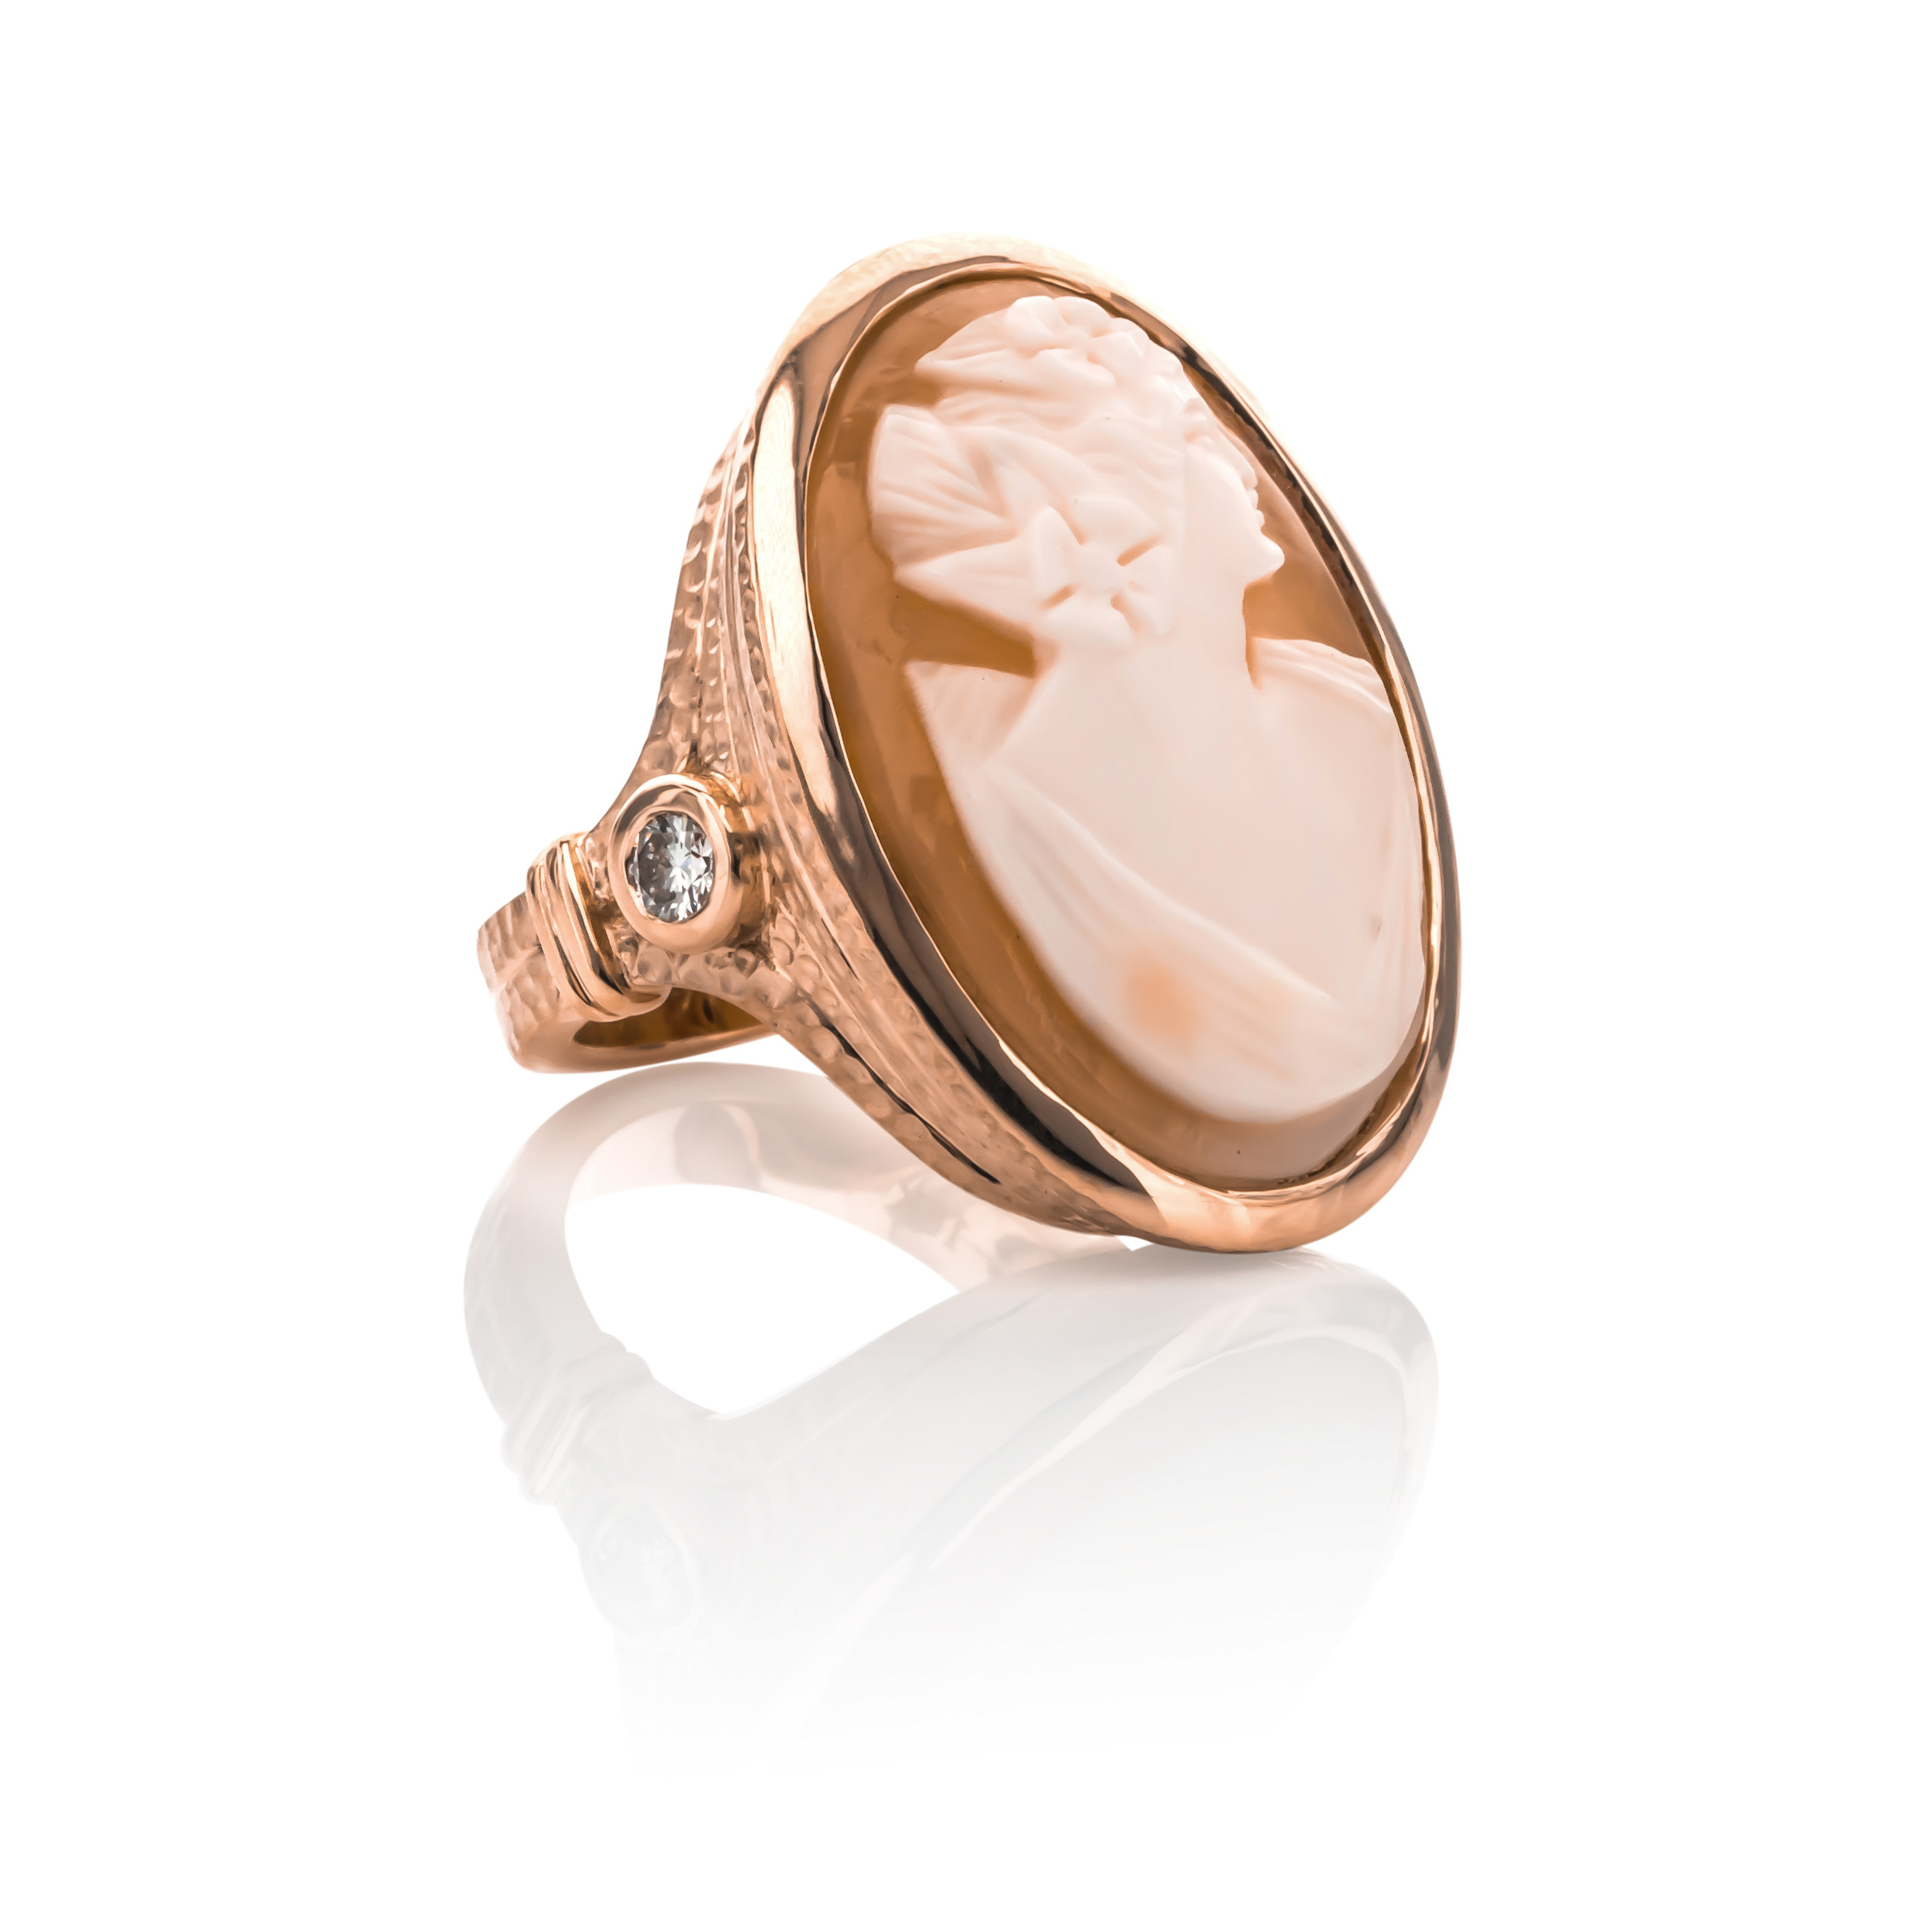 CUSTOM CAMEO AND DIAMOND ROSE GOLD RING redesigned using our client's cameo brooch.